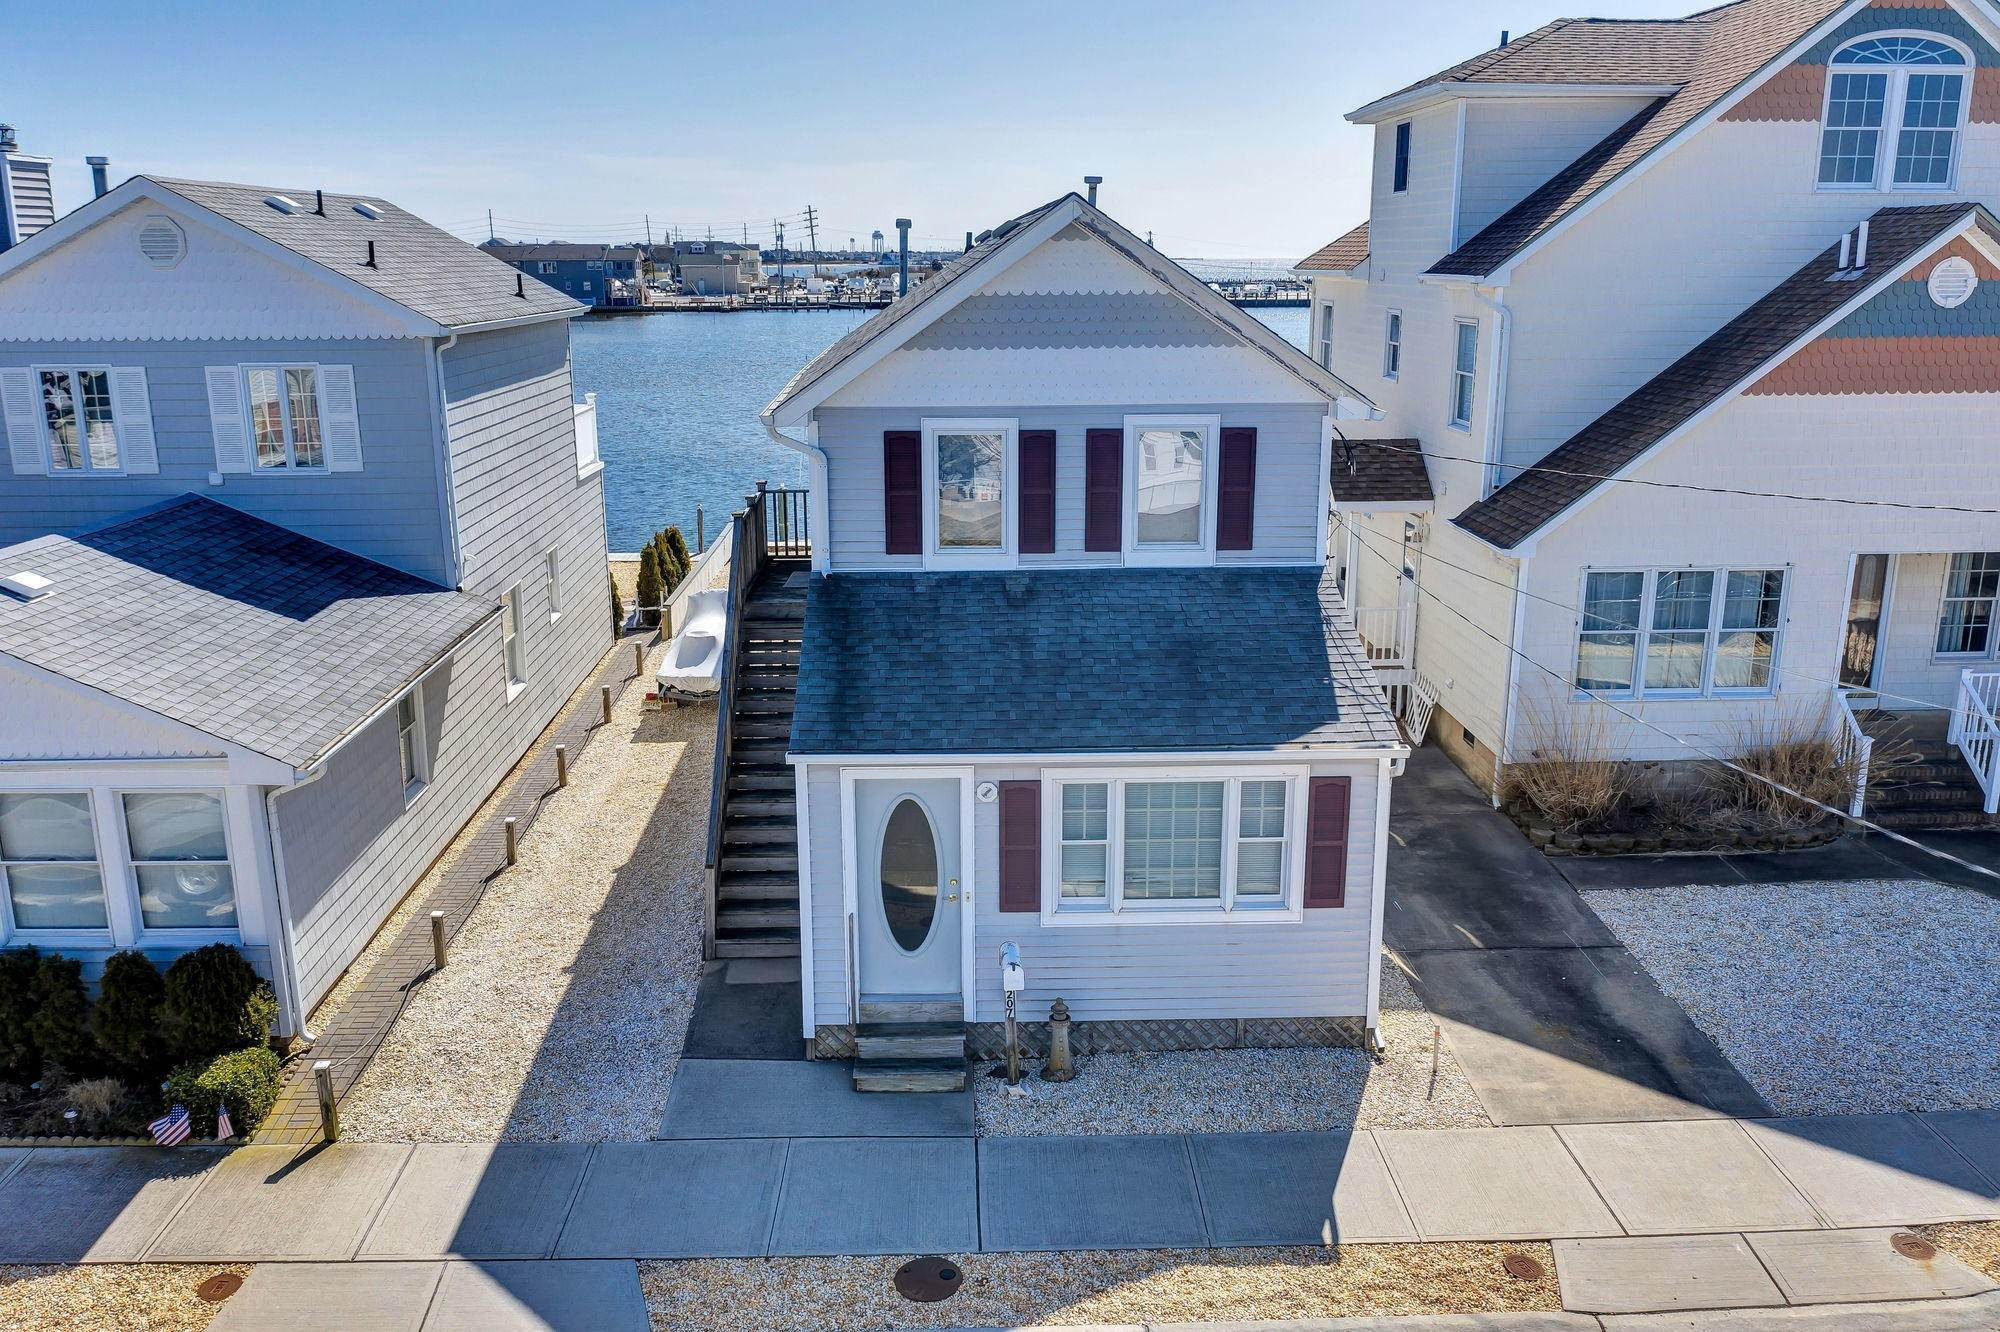 Property for Sale at 207 N Street Seaside Park, New Jersey 08752 United States